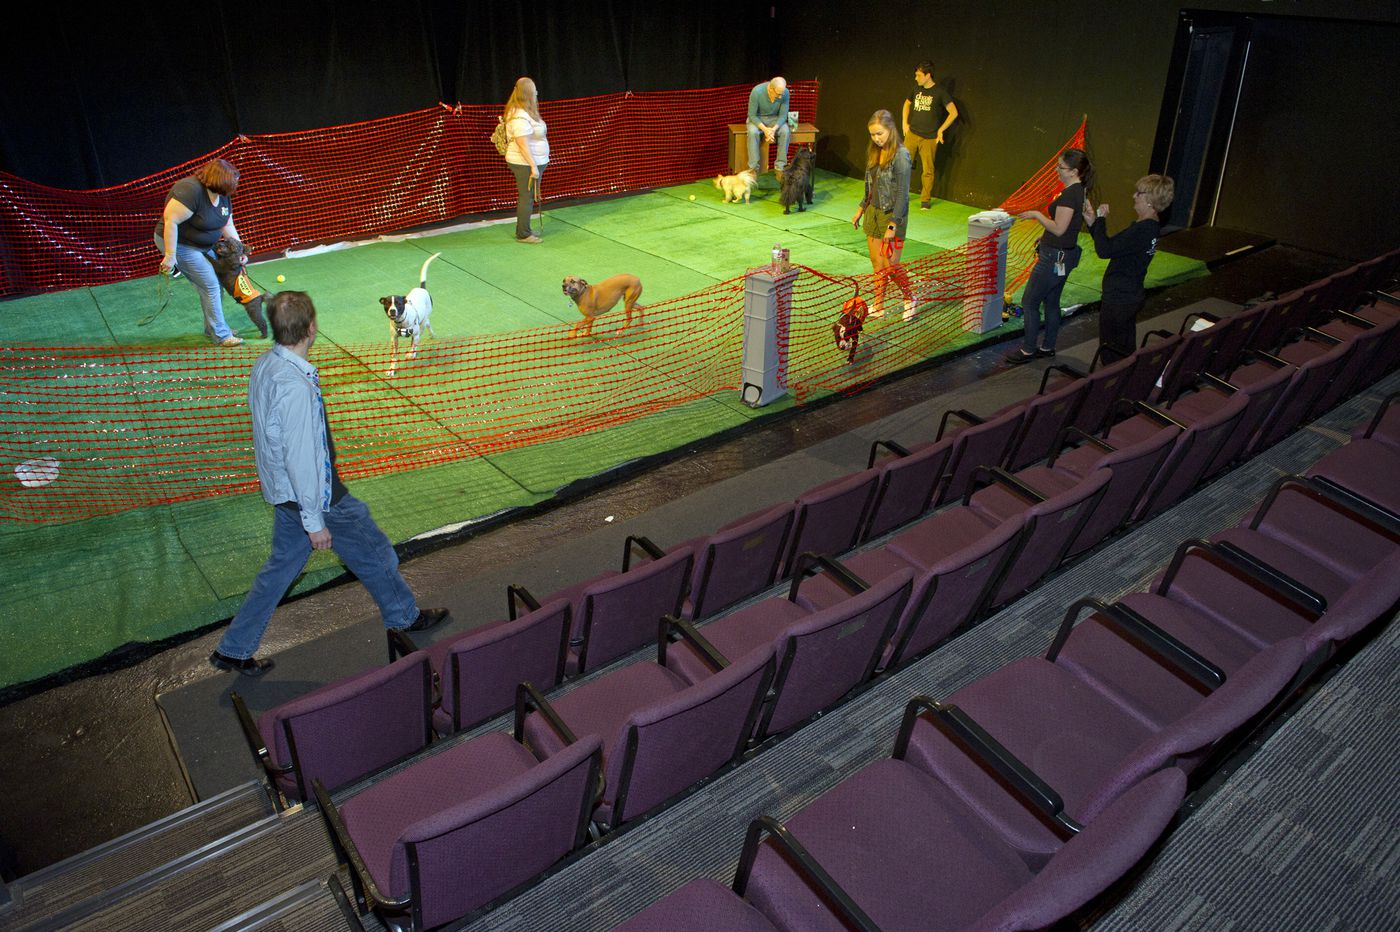 InterAct invites dogs to explore the theater as part of its June-a-Palooza festival